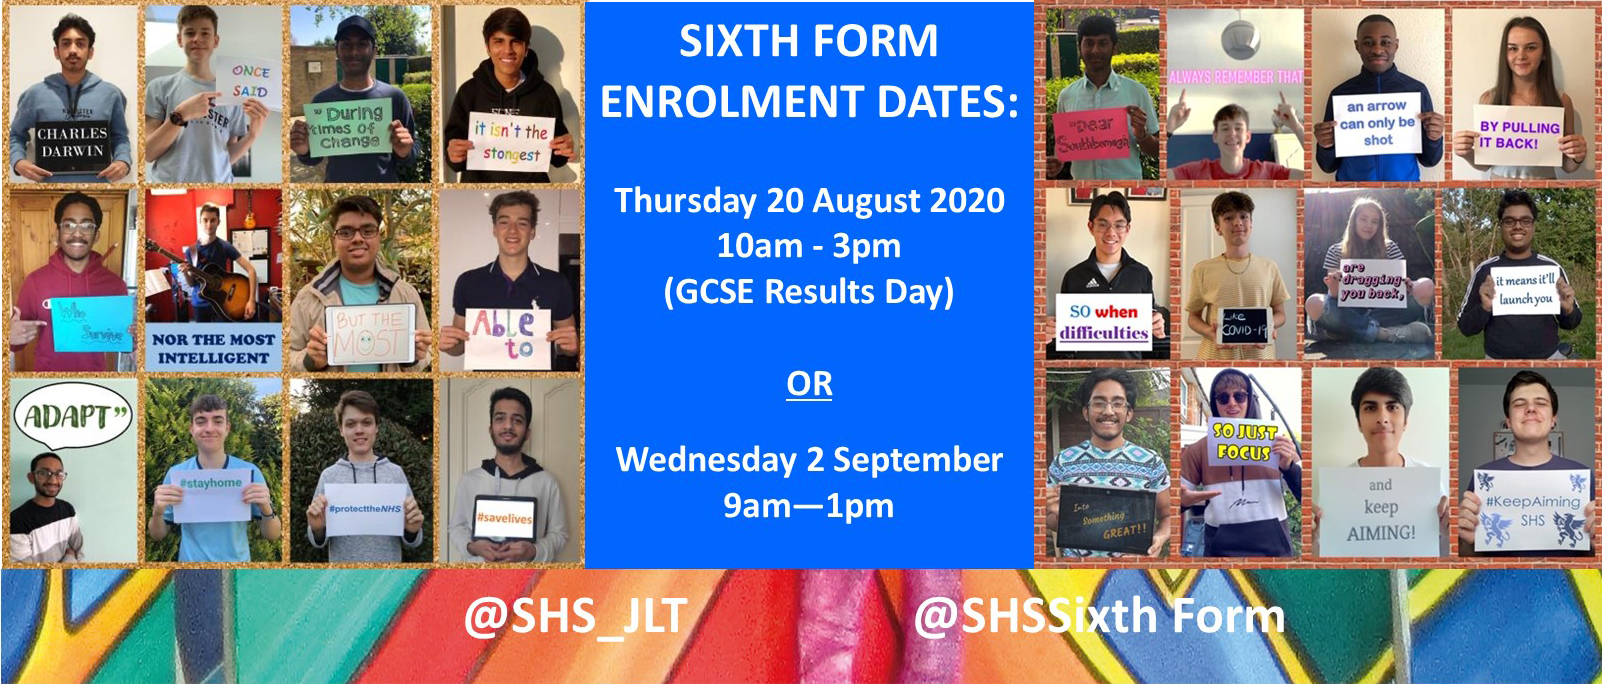 SIXTH_FORM_LOCKDOWN_BANNER_FINAL1